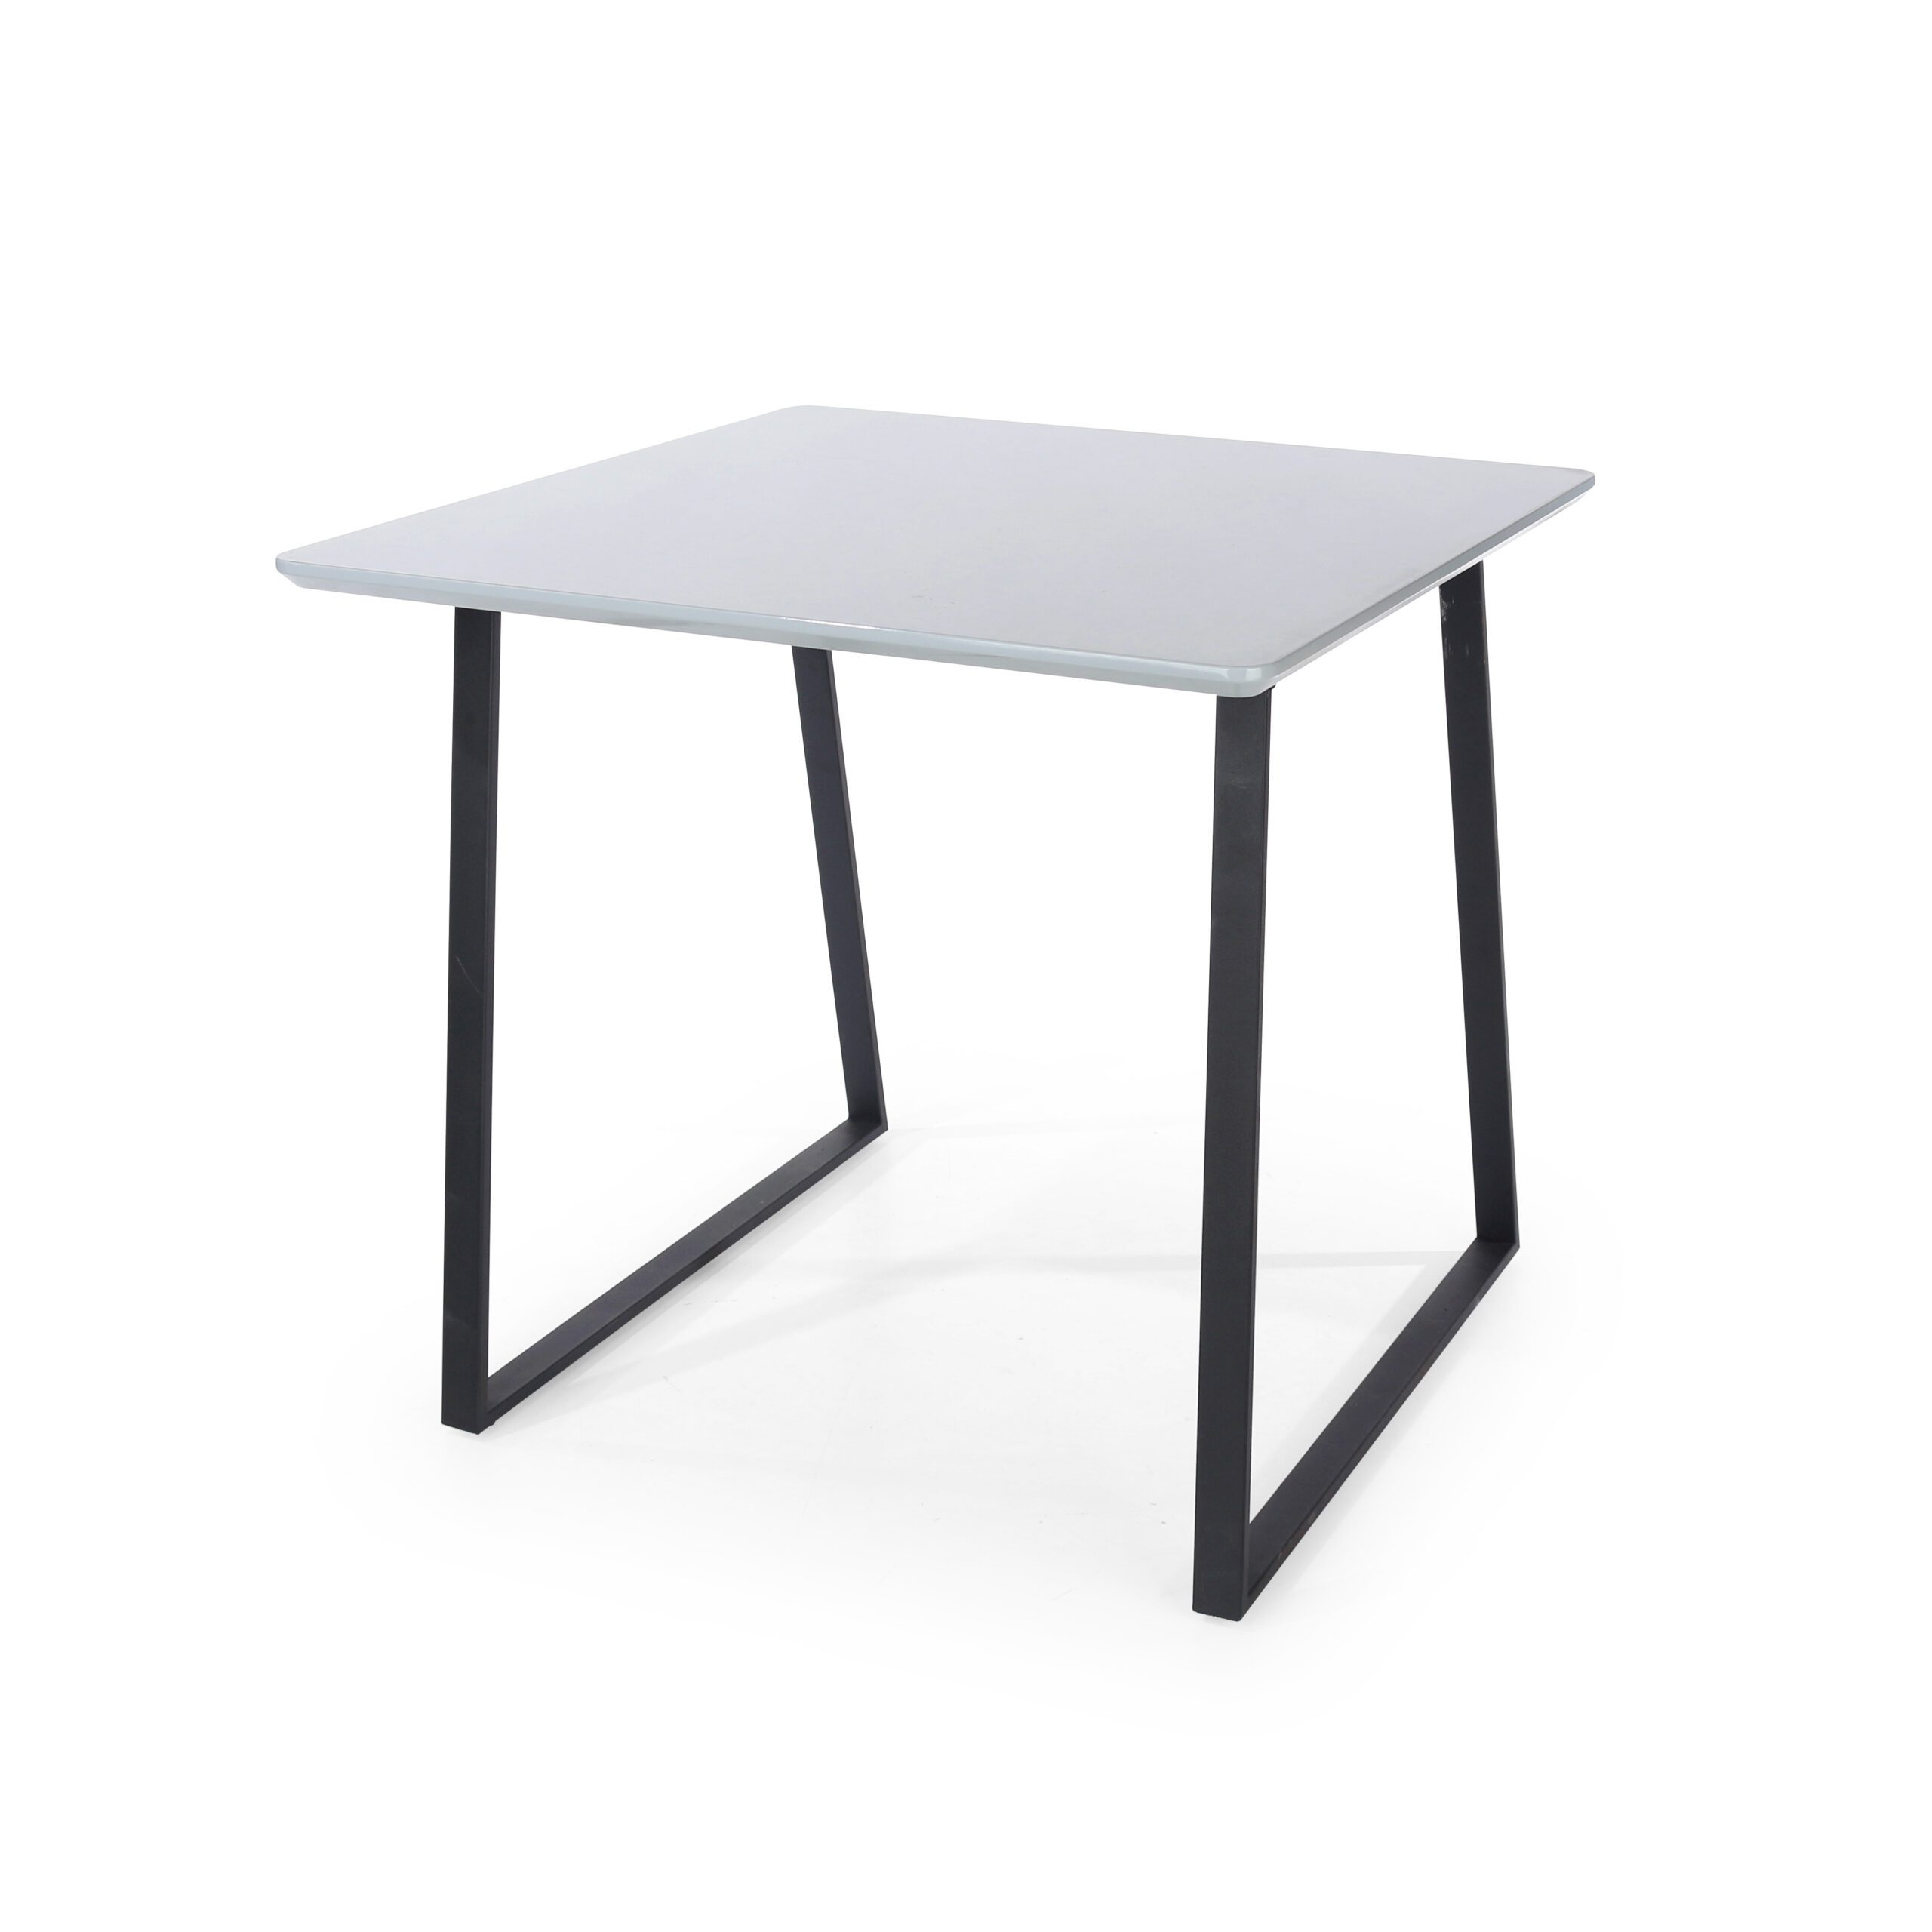 Penny square table with black metal legs